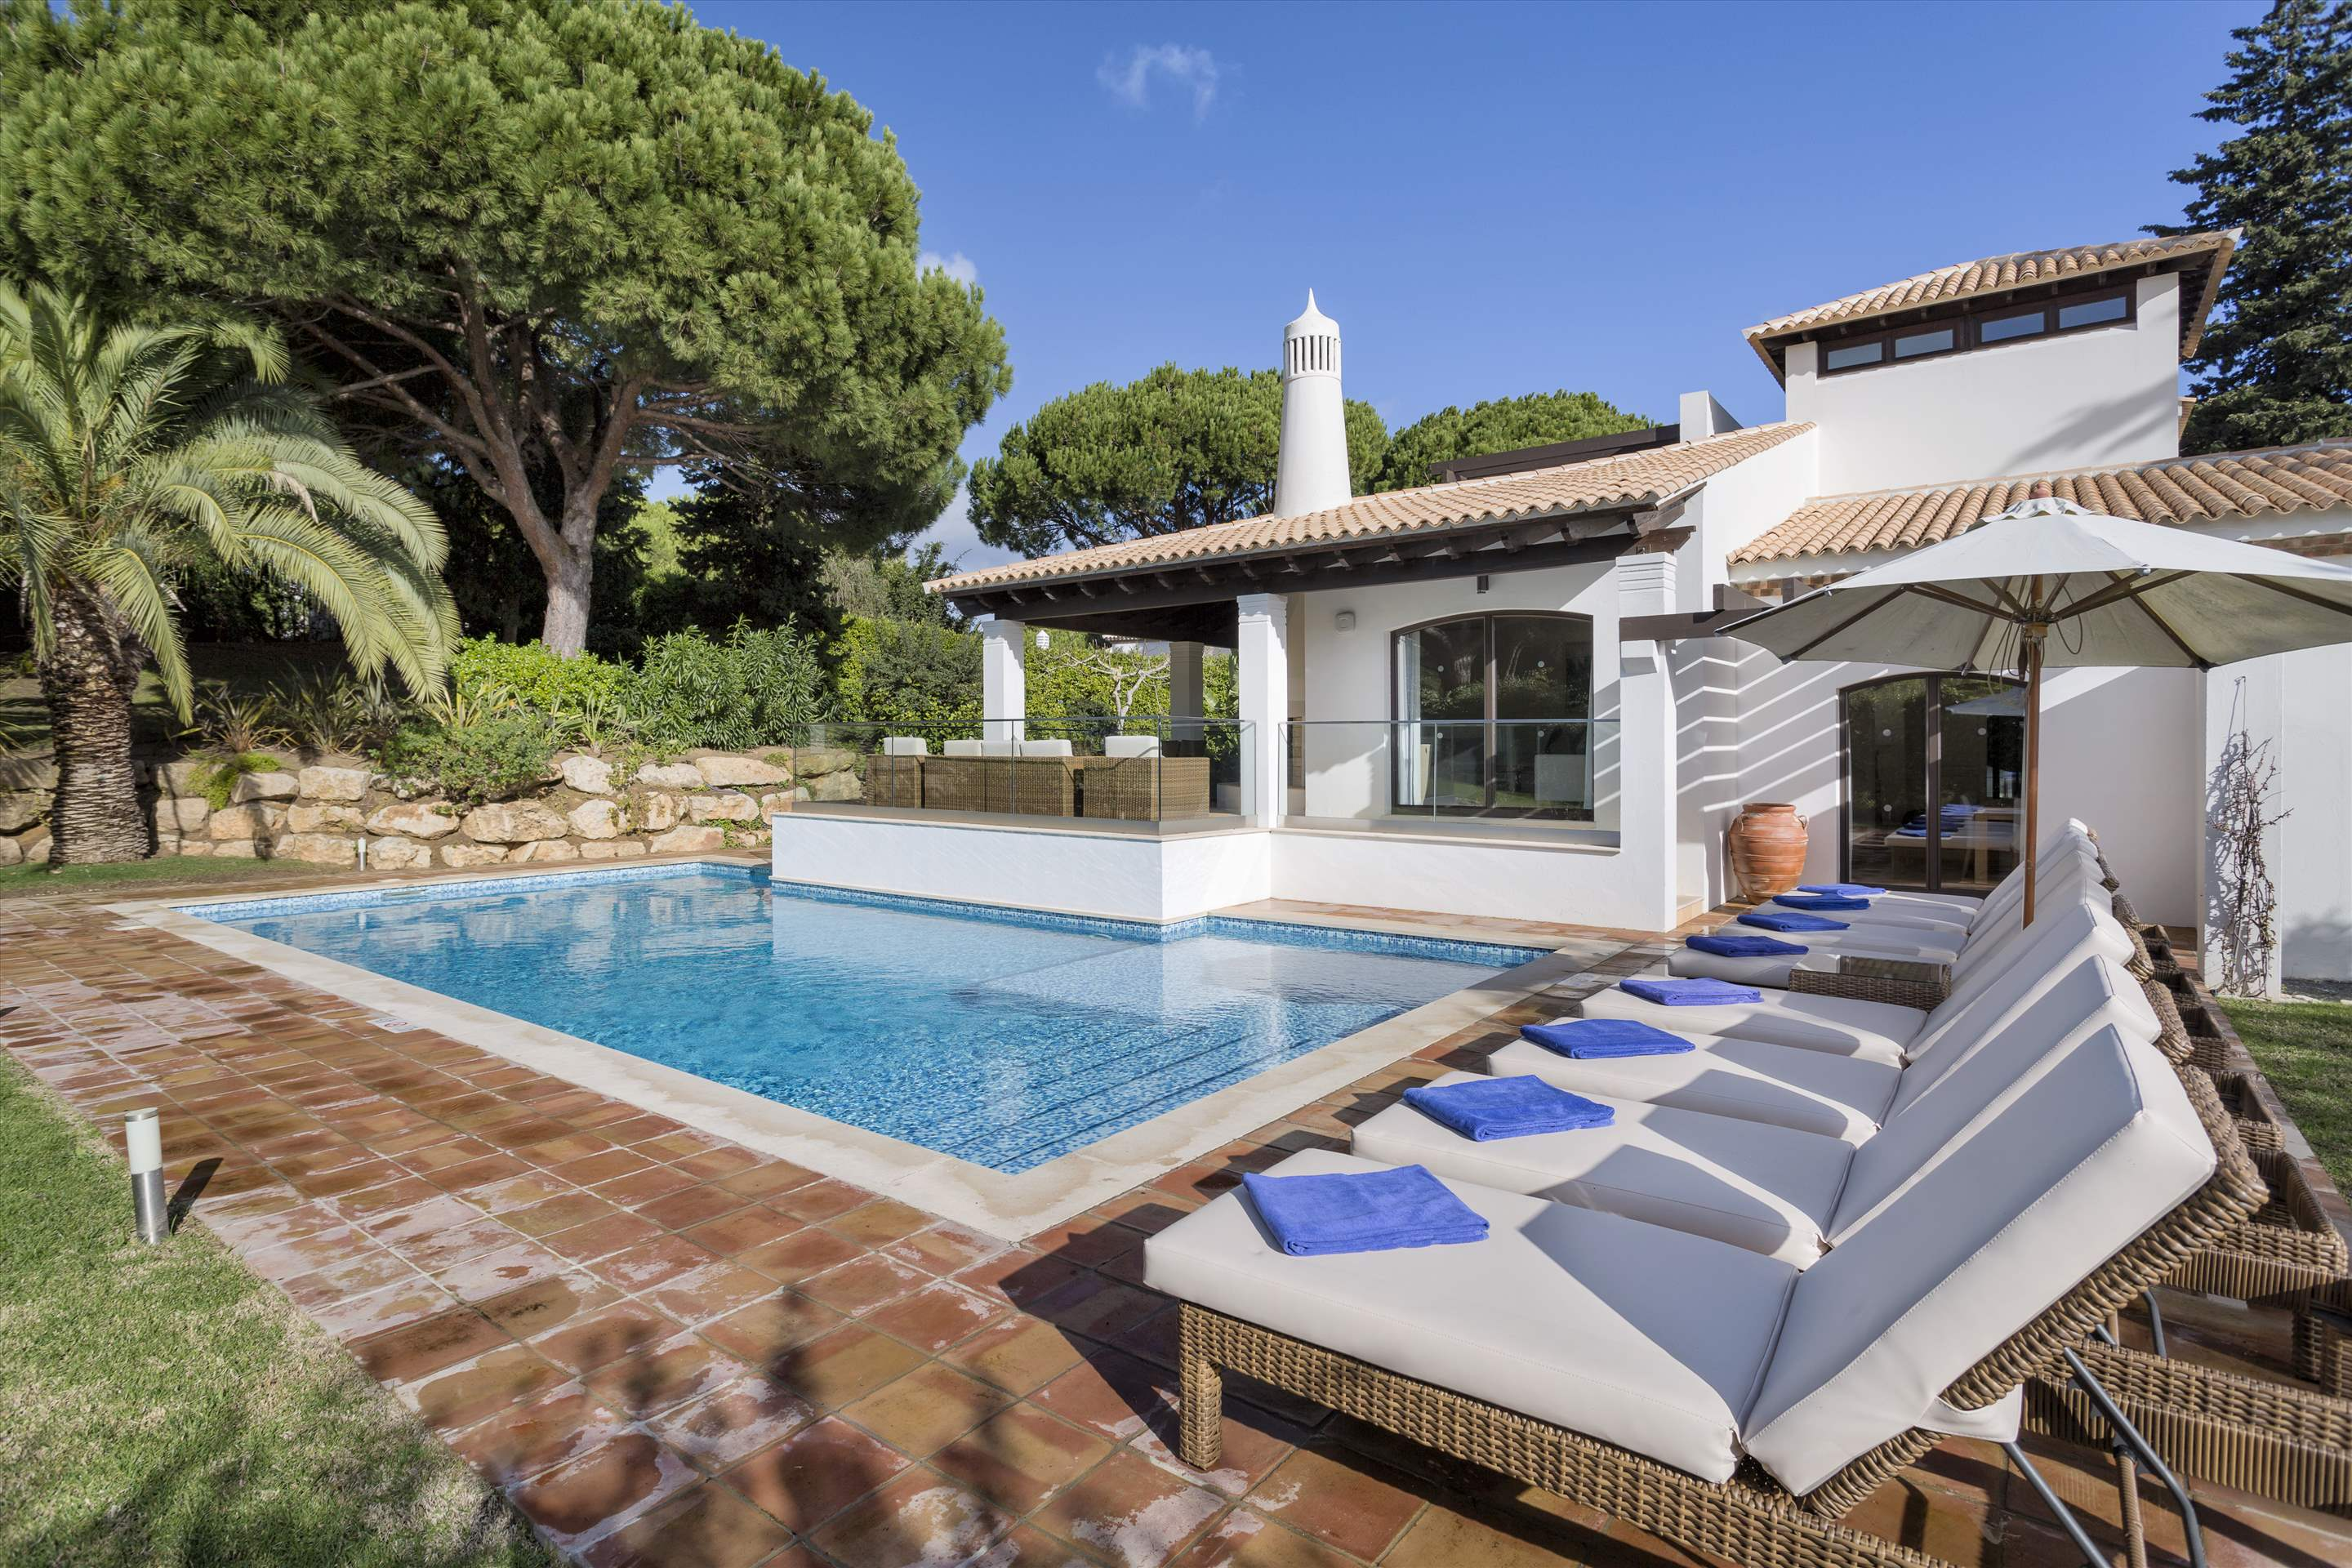 Pine Cliffs Villa Falesia, 4 bedroom rate, main house, 4 bedroom villa in Pine Cliffs Resort, Algarve